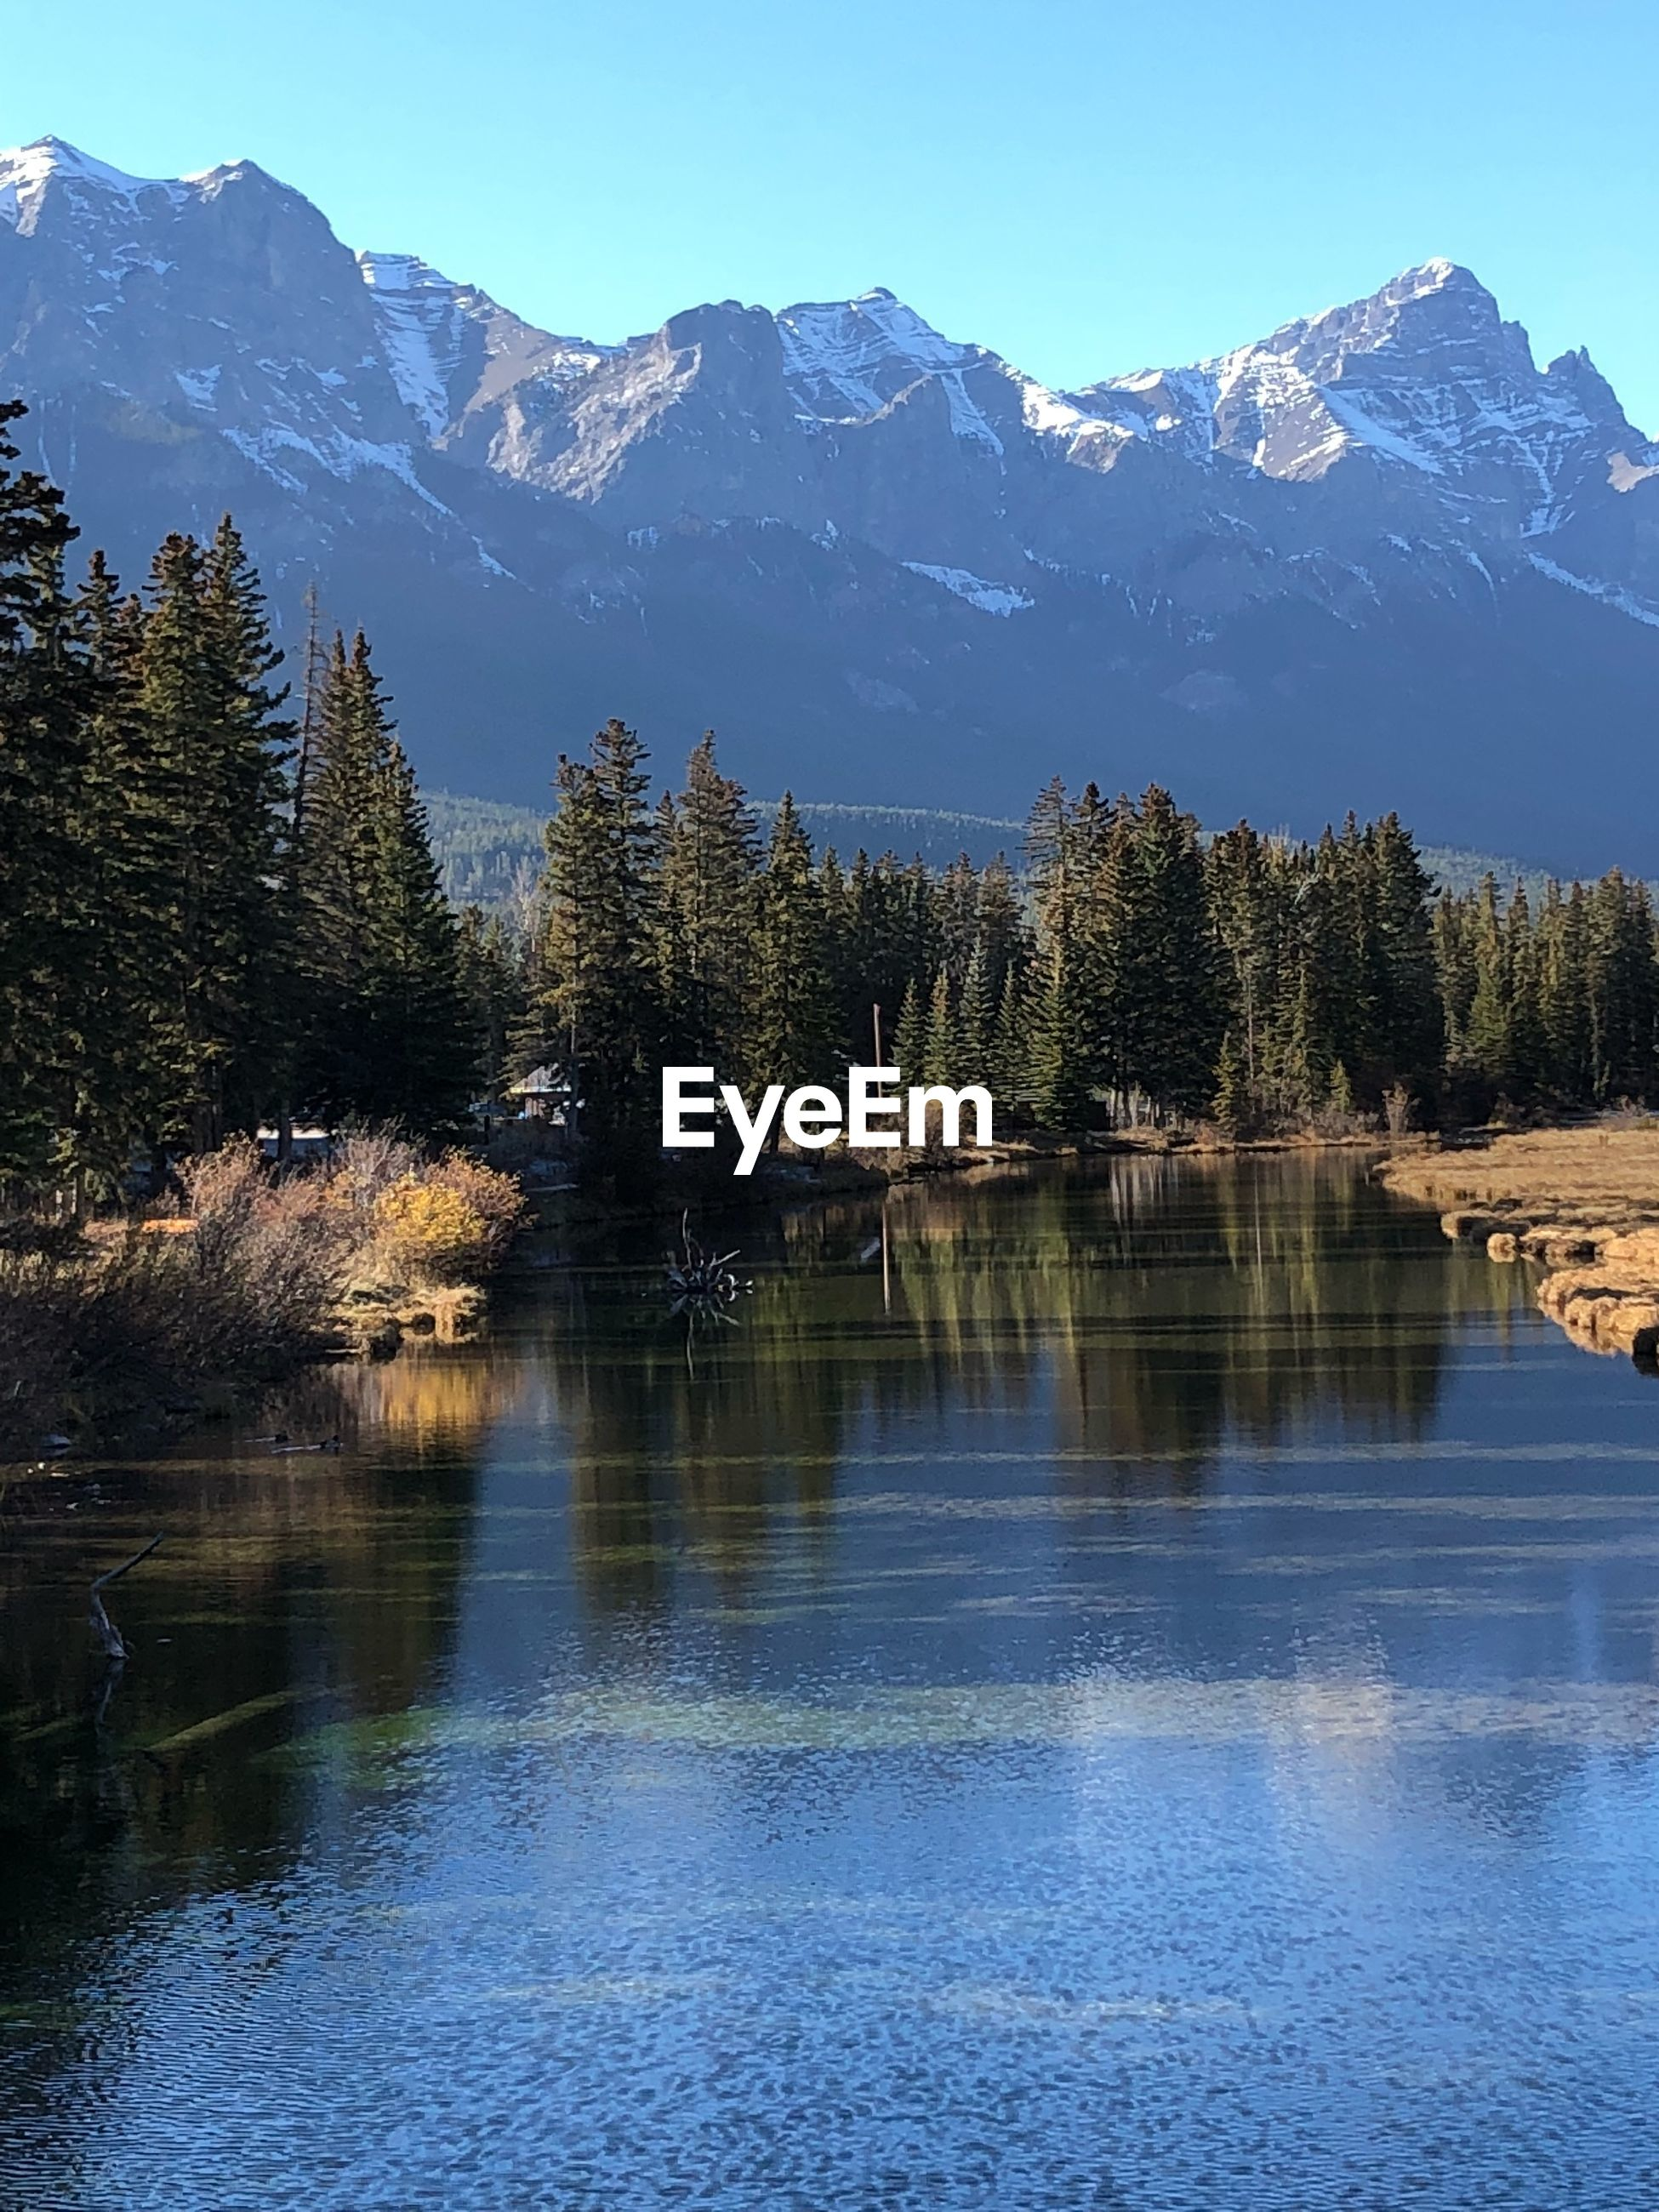 SCENIC VIEW OF LAKE BY MOUNTAINS AGAINST SKY DURING WINTER